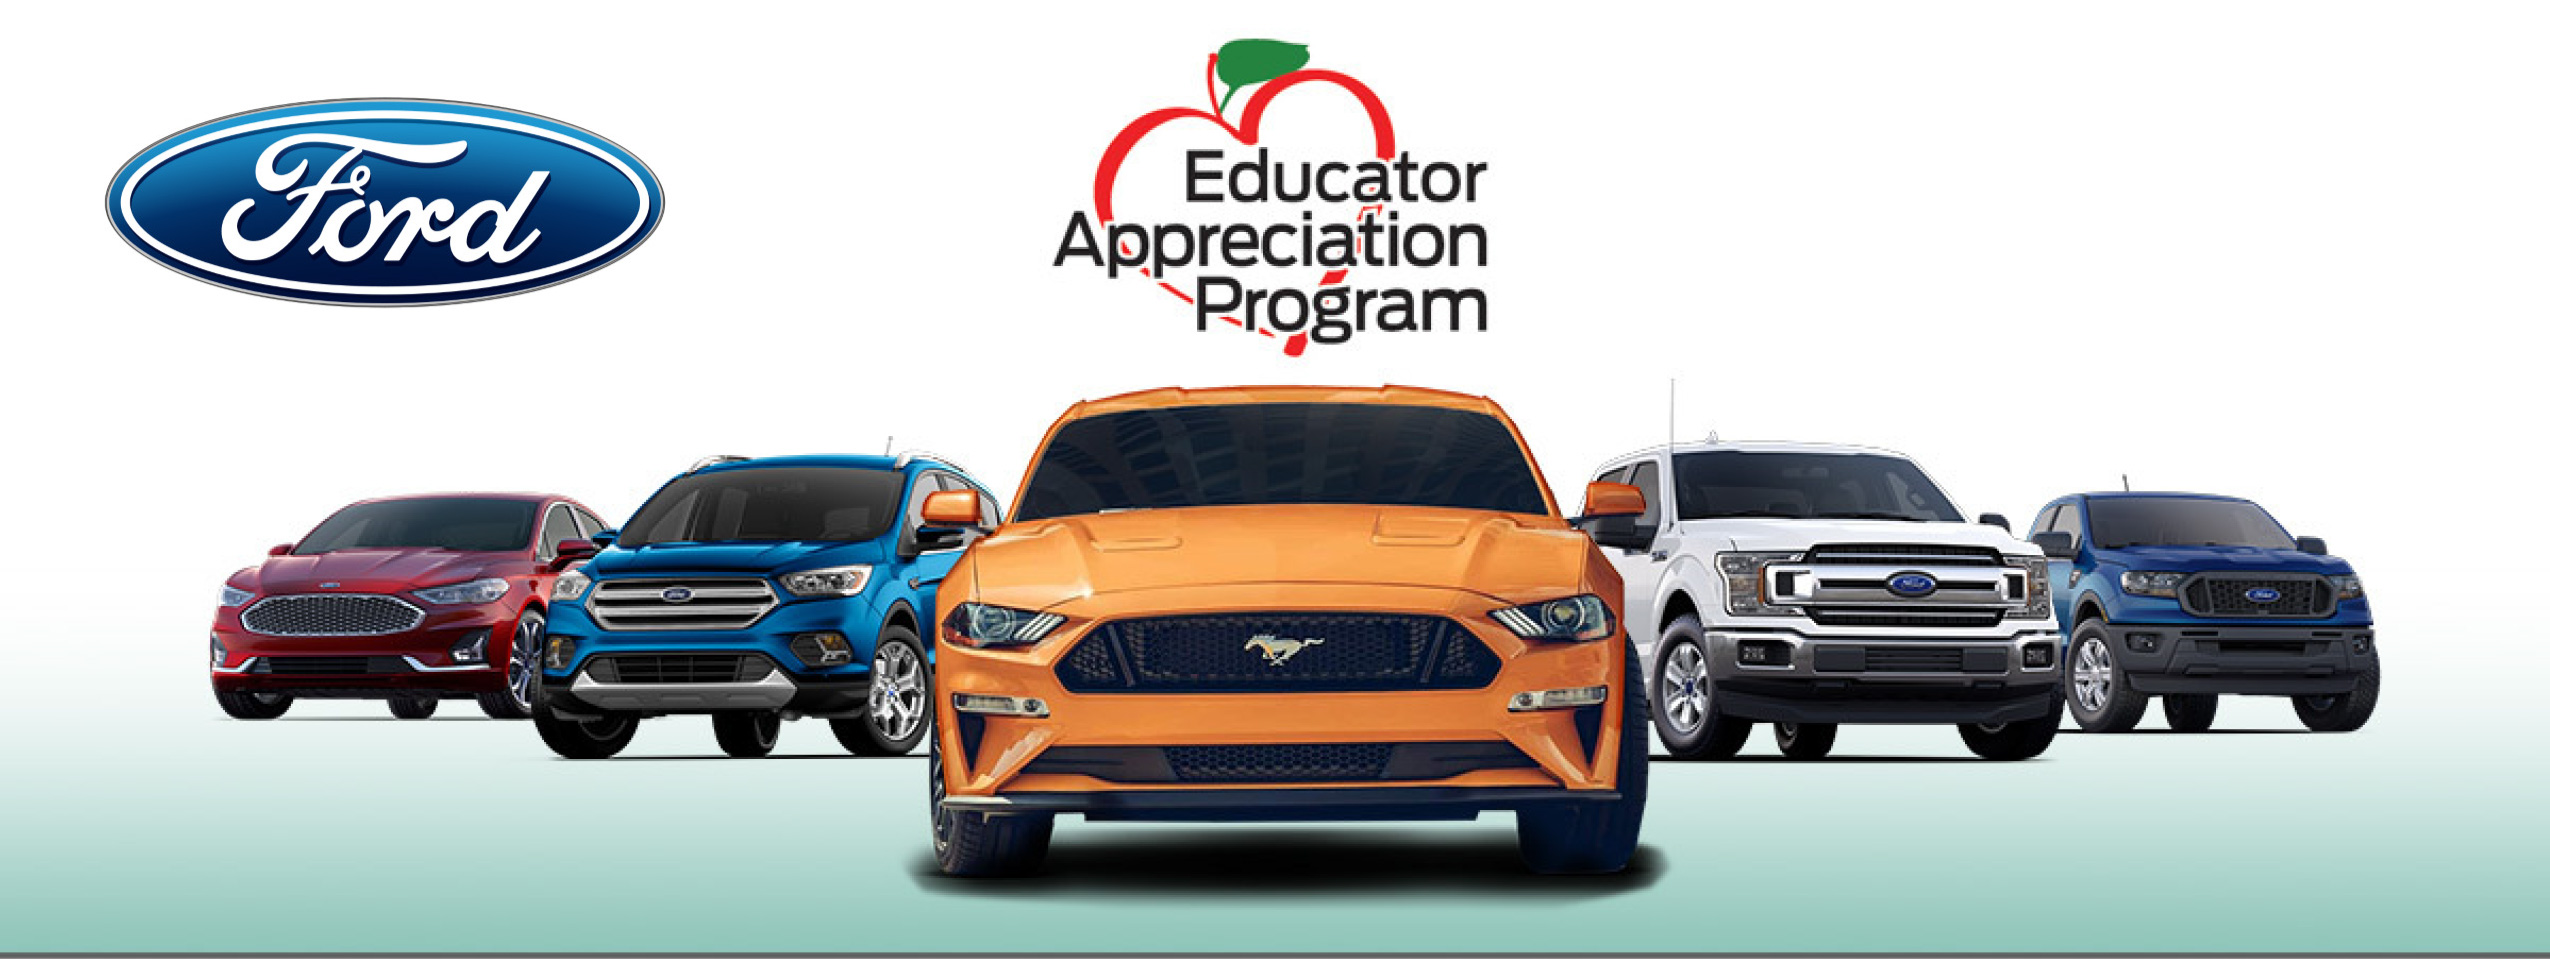 Ford Honors Our Educators!